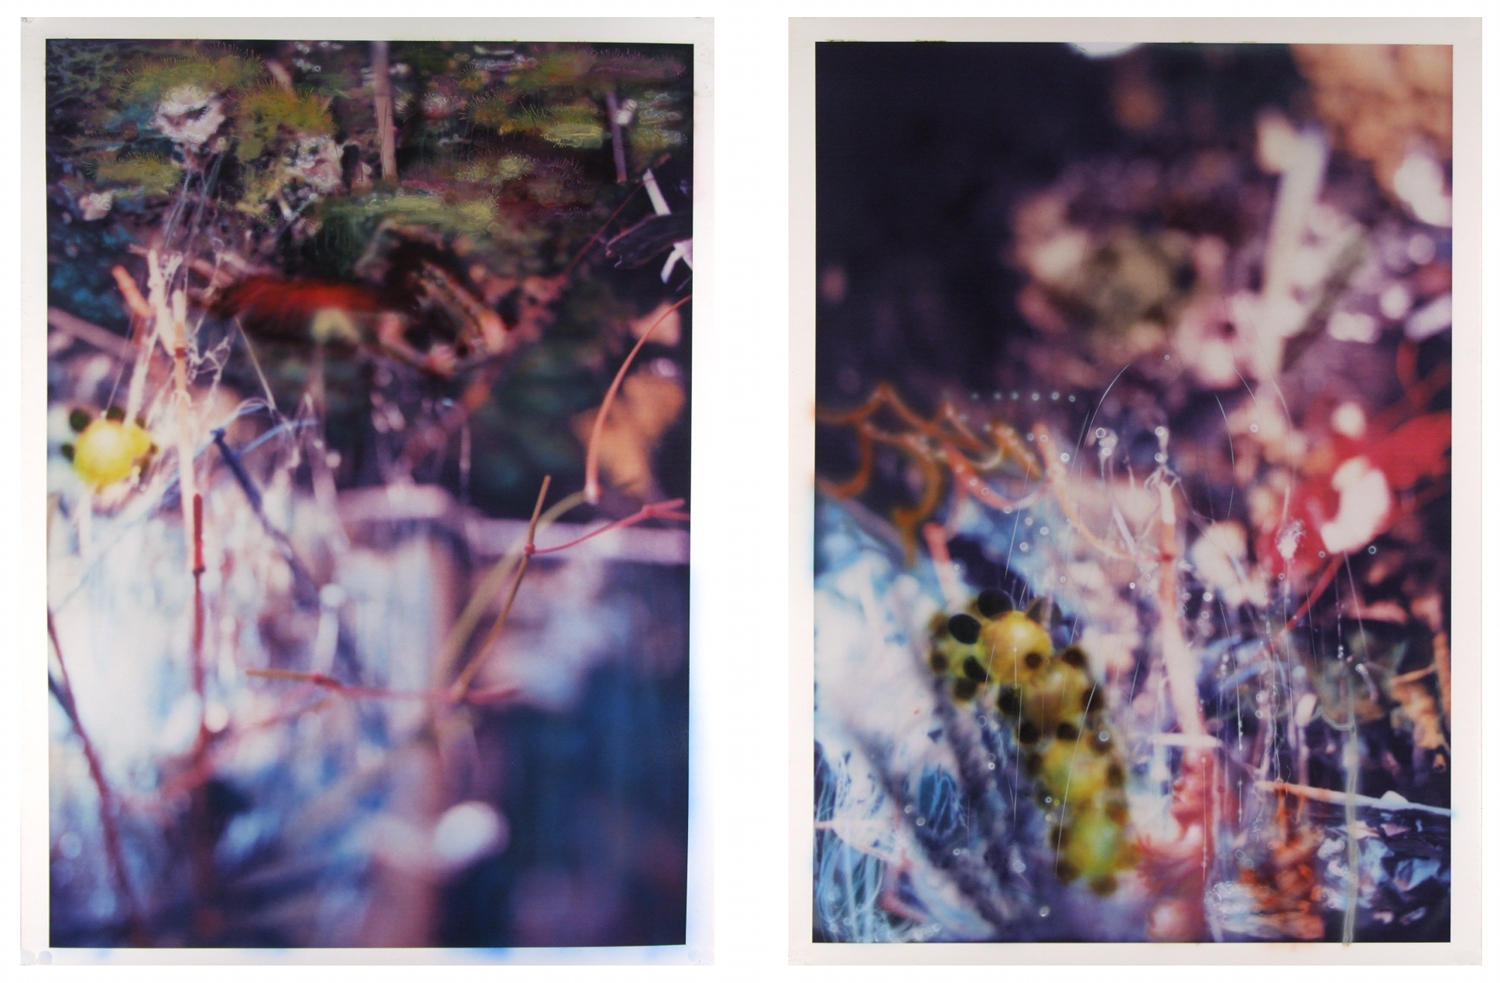 Unspoiled Natural Surroundings  India ink on two pigment prints 24x32 inches each image 2009